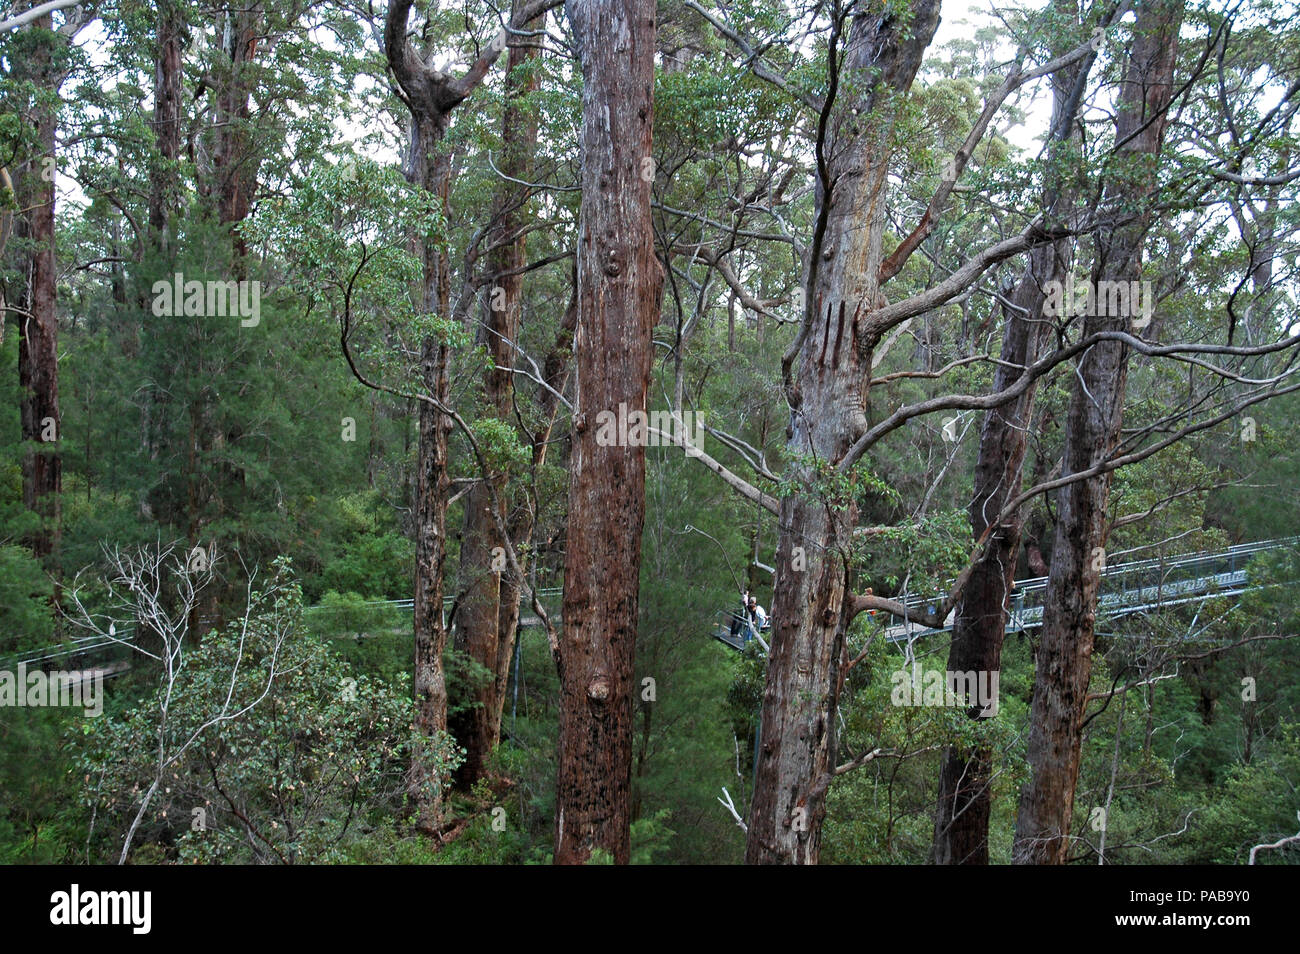 People on the Tree Top Walk, Valley Of The Giants, Denmark, Western Australia. - Stock Image